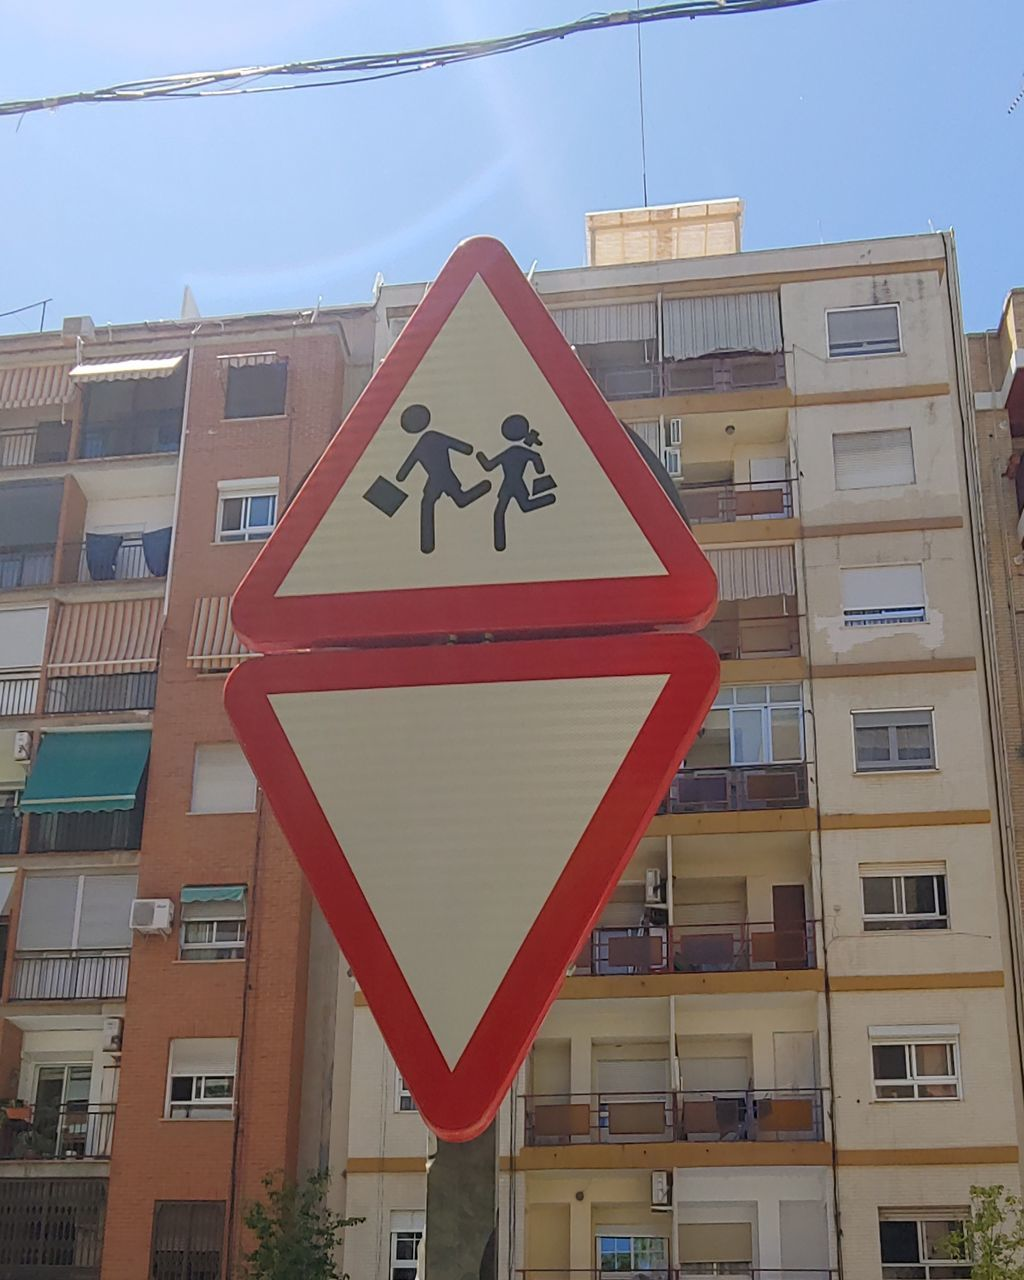 built structure, building exterior, architecture, communication, sign, building, city, sky, road sign, no people, day, road, low angle view, warning sign, outdoors, residential district, triangle shape, information sign, nature, information, apartment